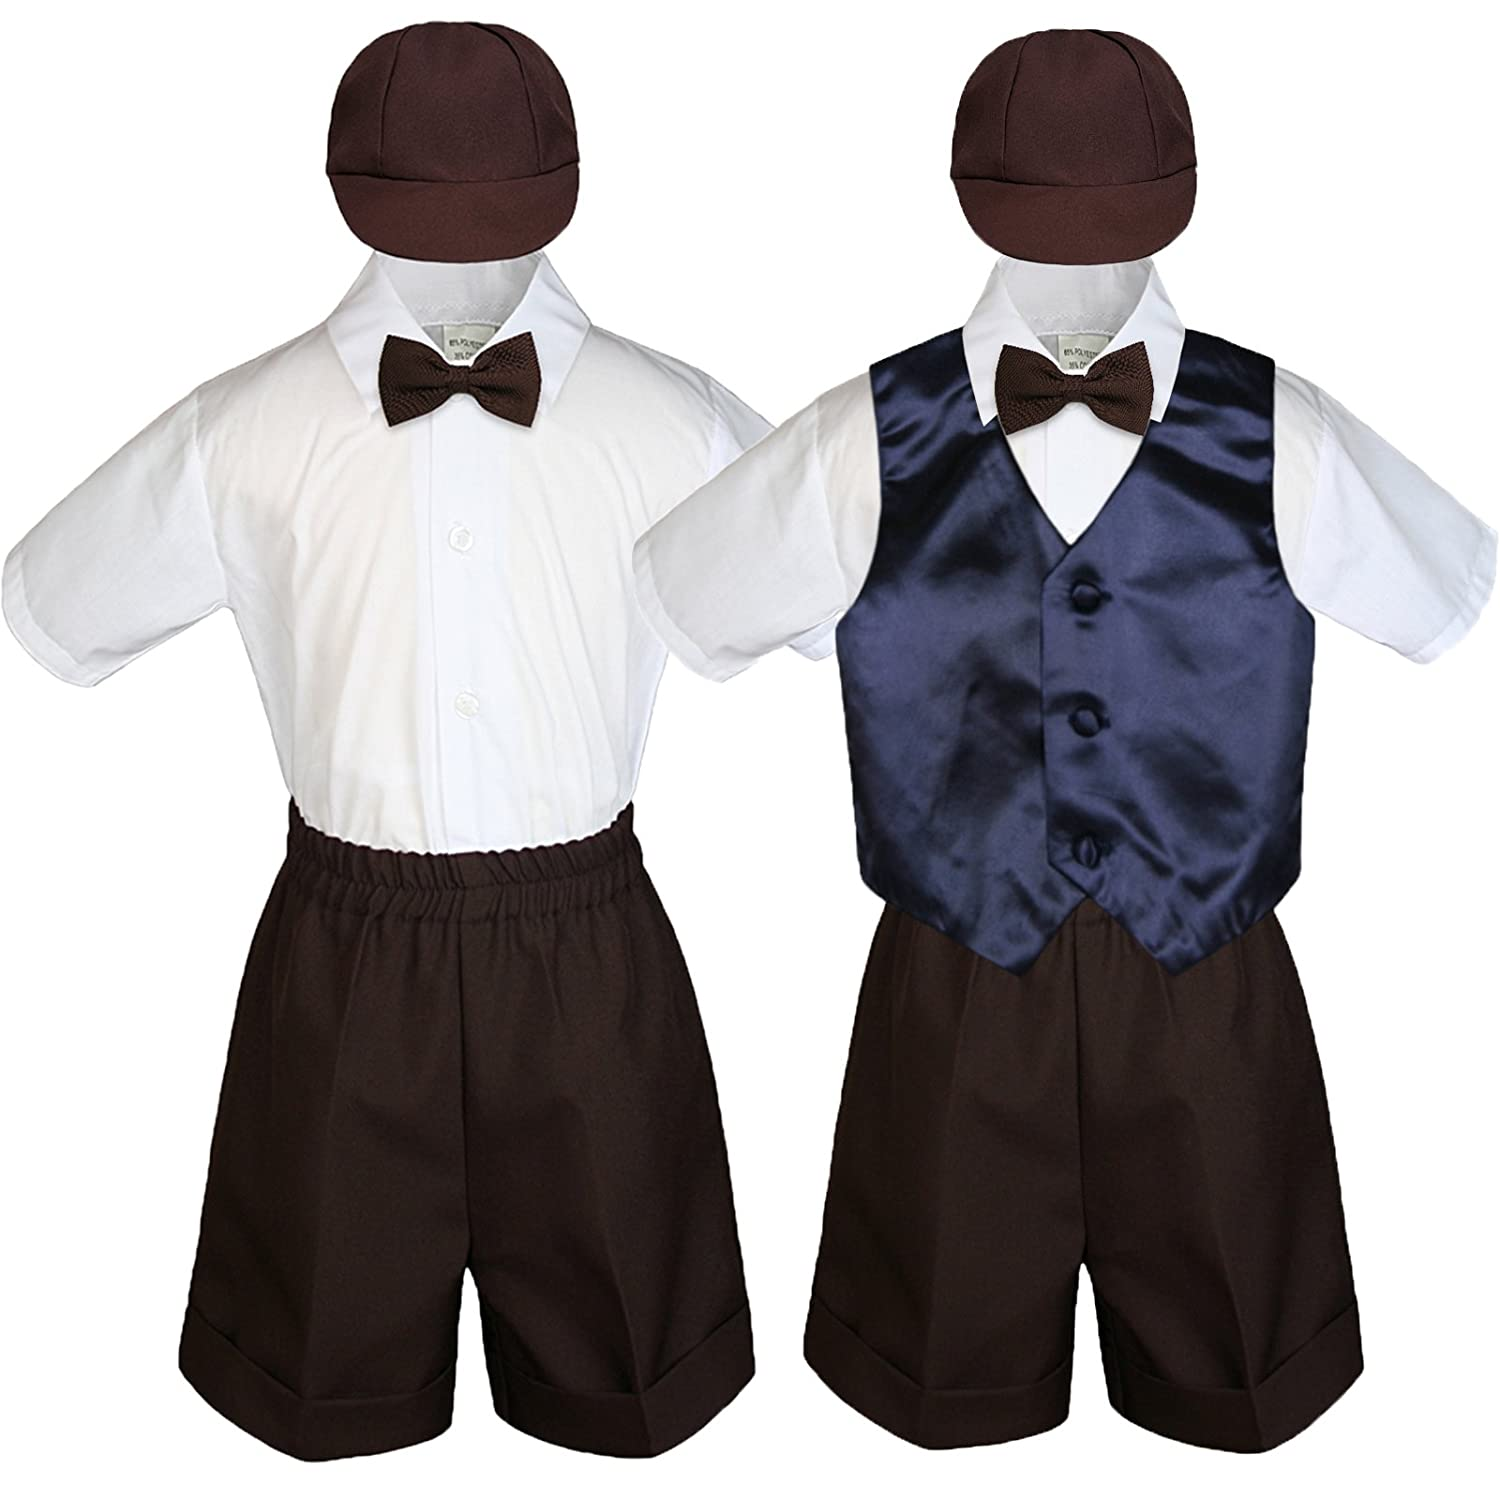 Leadertux Baby Kid Toddler Boy Formal Party Suit Brown Shorts Shirt Hat Vest Set Sm-4T